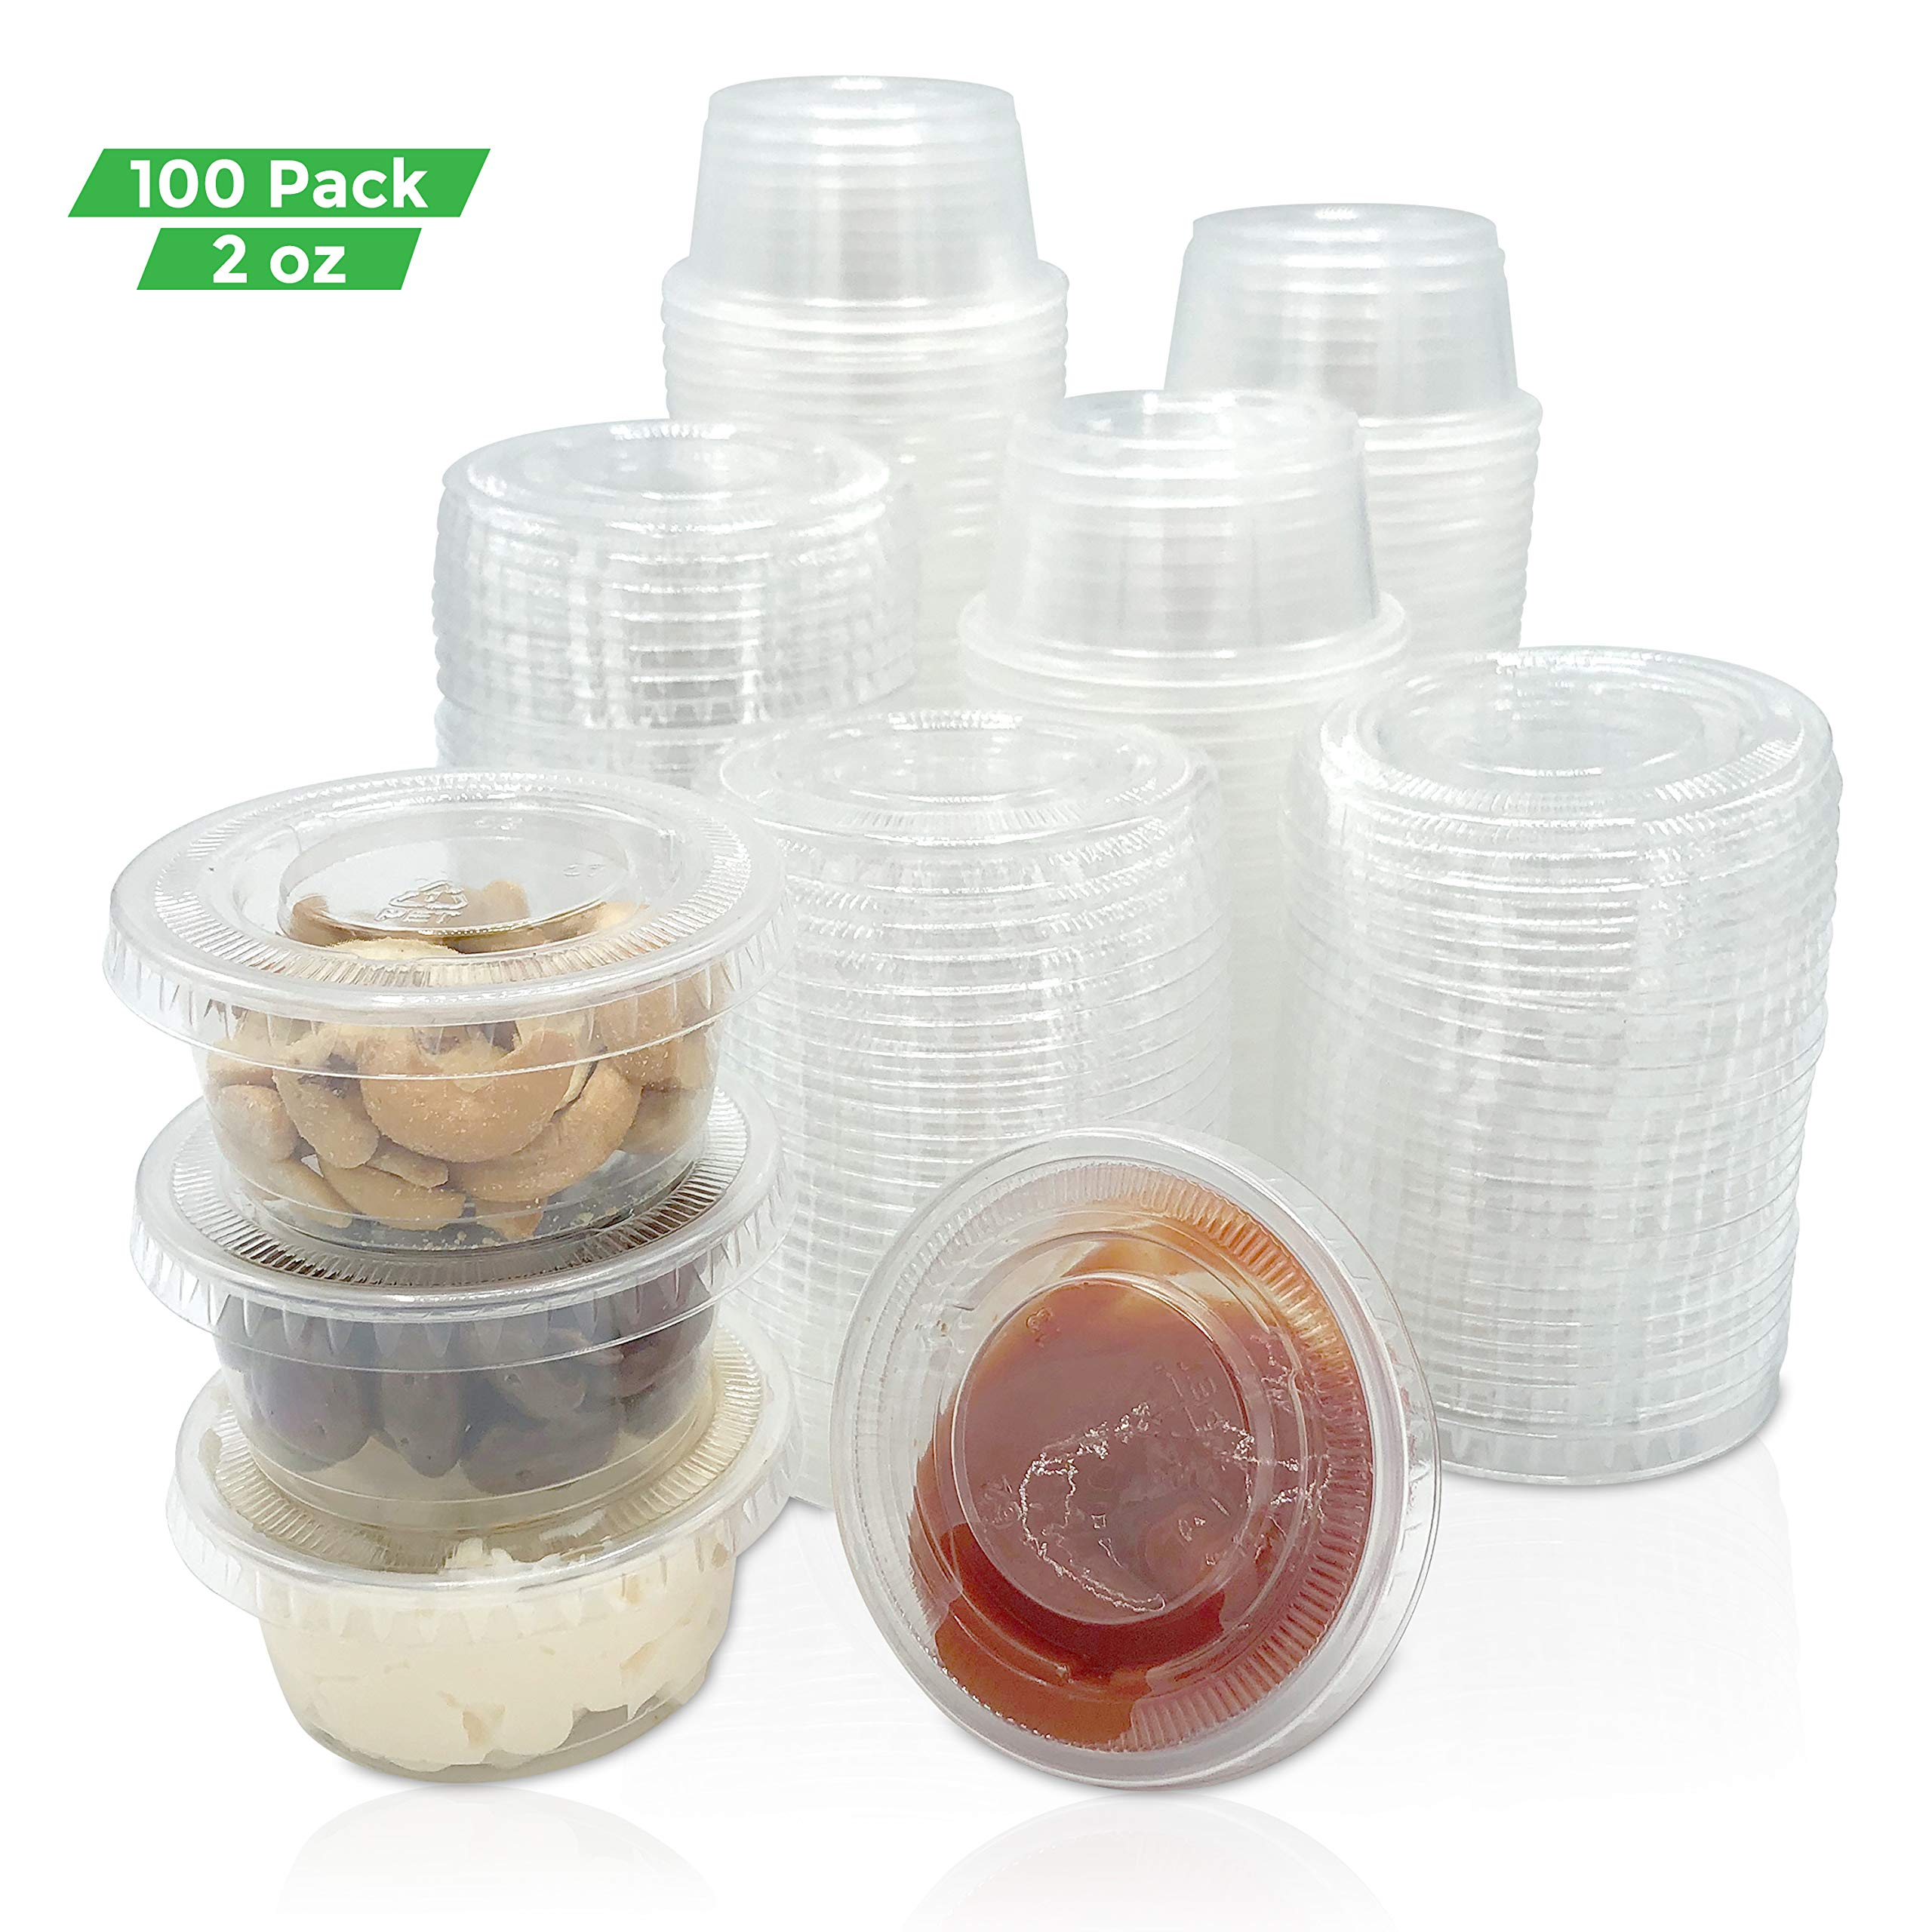 Jello Shot Cups- 2oz. Clear Plastic Condiment Cups/Portion Cup with Lids. (2500-Pack) Salad Dressings, Dips, Candies, Art Samples and More by Buzzy B Choice